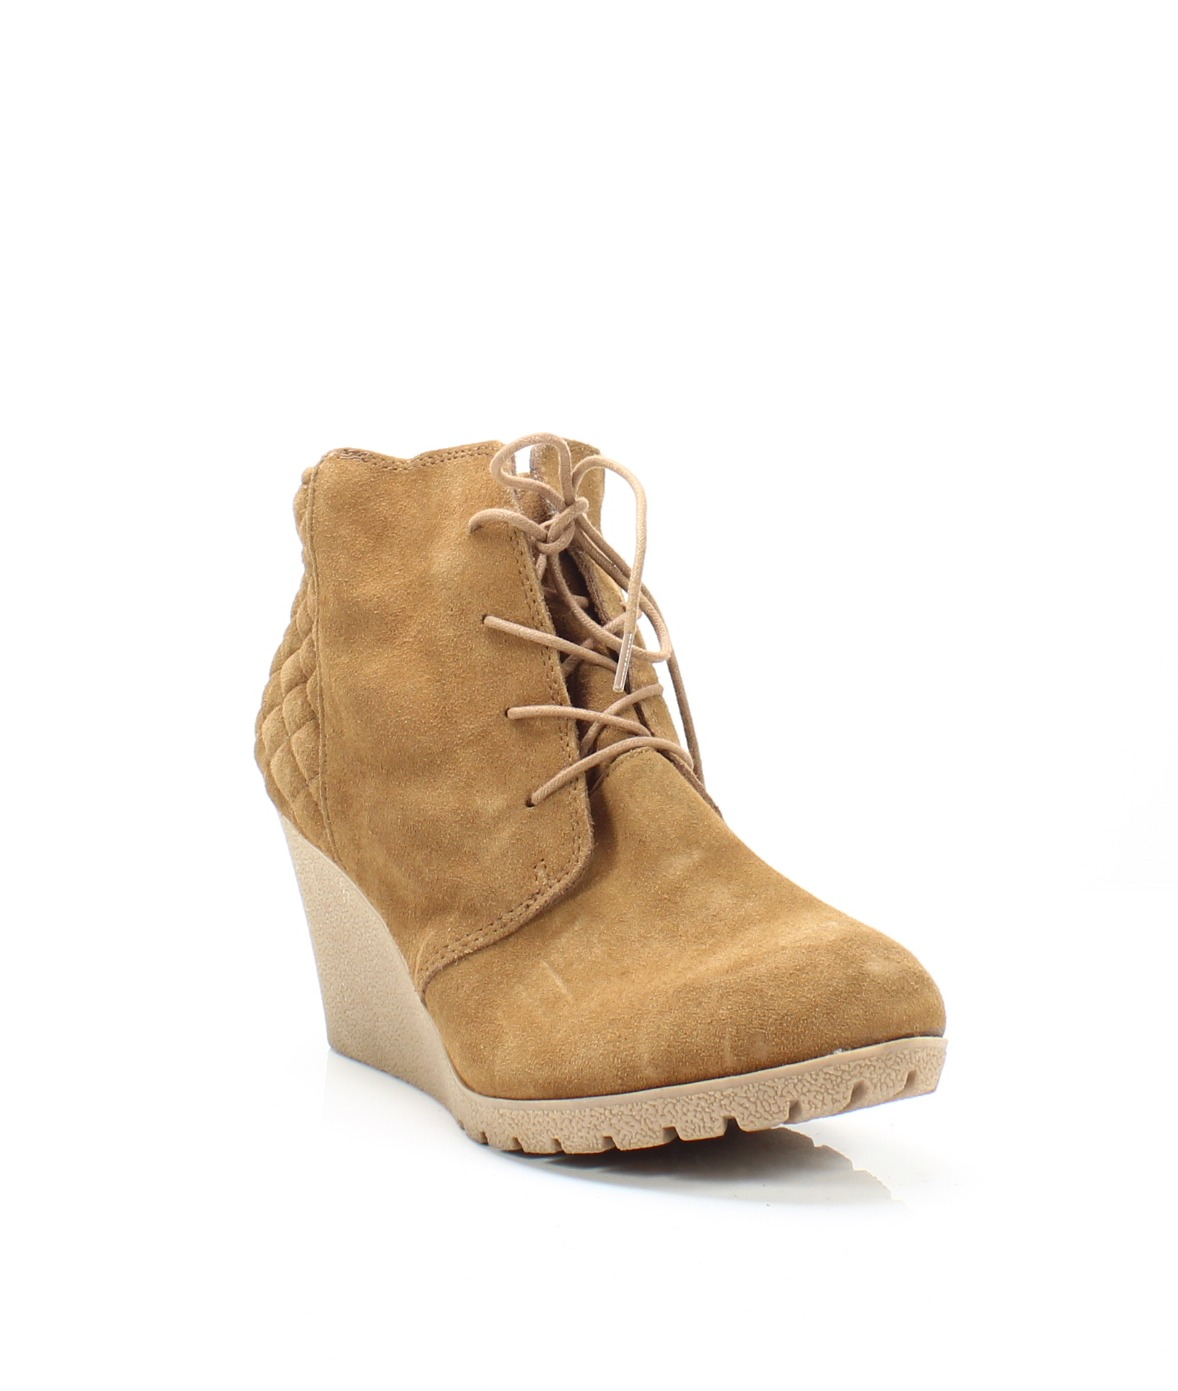 e7bfcb78f97 MIA NEW Tan Women s Size 13M Debra Quilted Suede Wedge Lace-Up Boots  69-   308